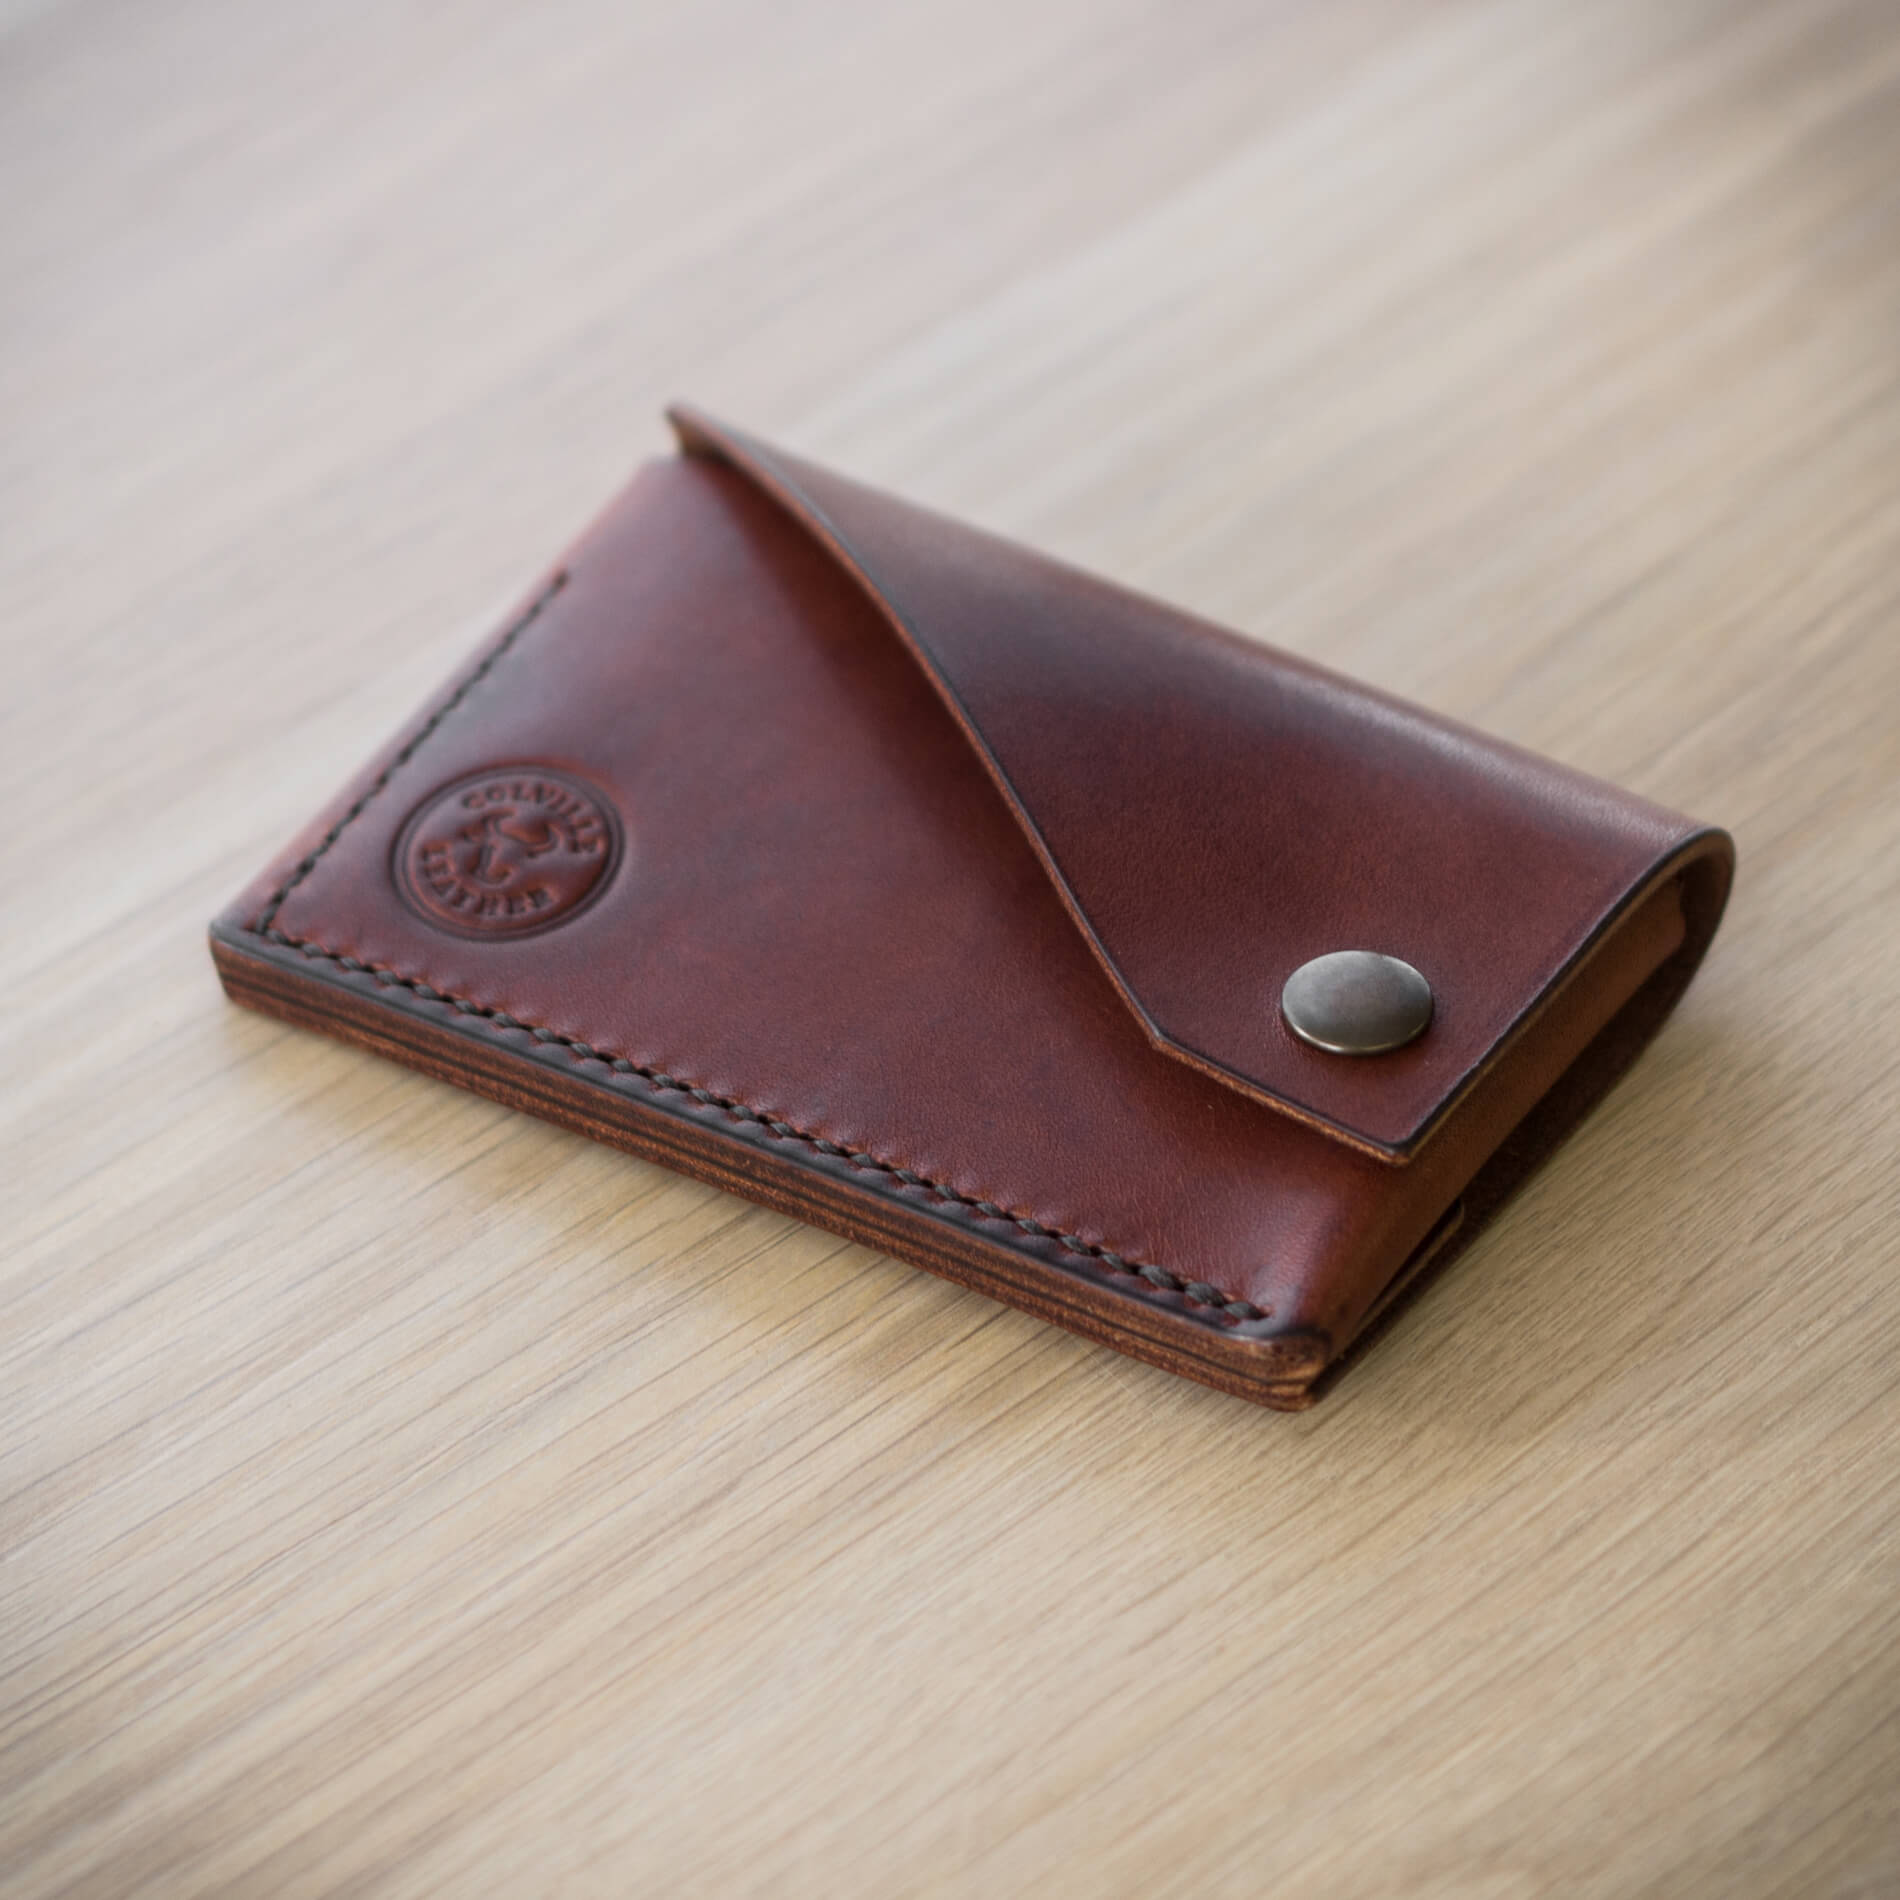 Colville Leather handmade wallet, The Cove